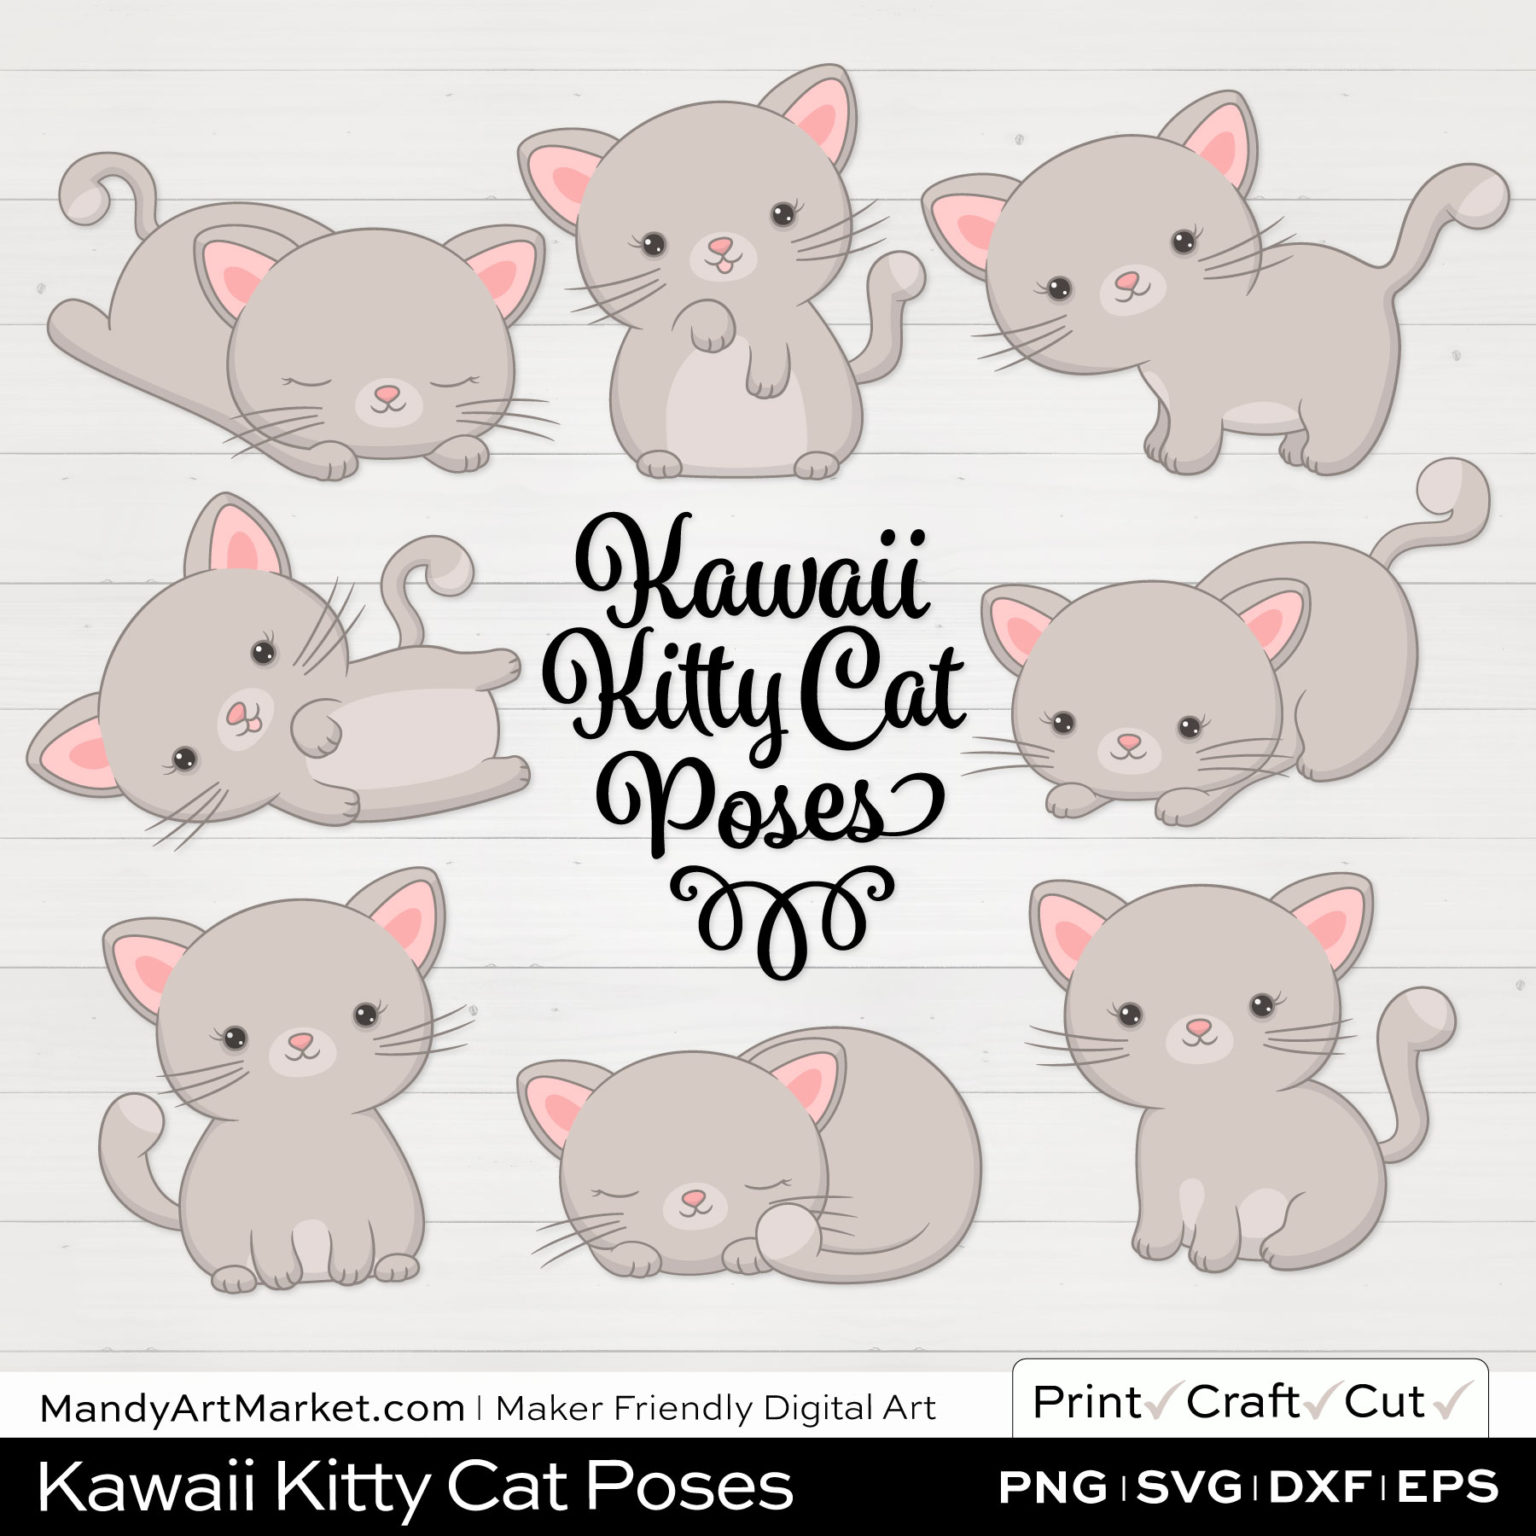 Oatmeal Gray Kawaii Kitty Cat Poses Clipart on White Background